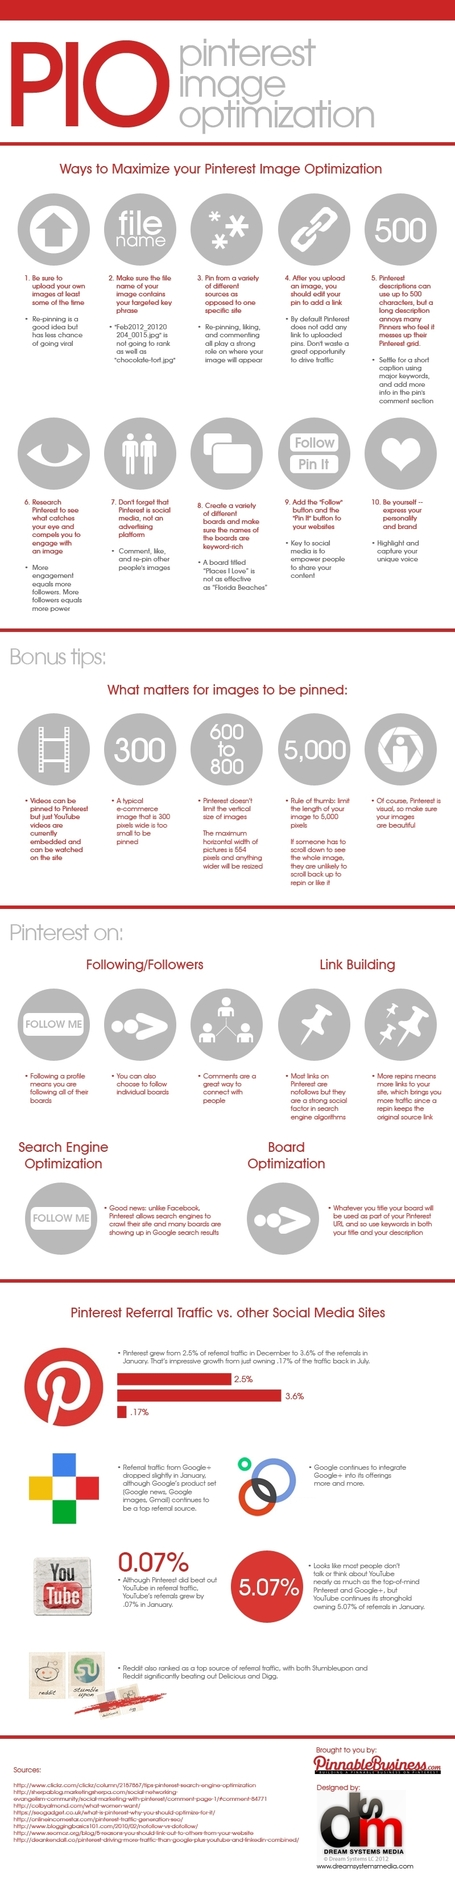 Pinterest Image Optimization [Infographic] | Aware Entertainment | Scoop.it